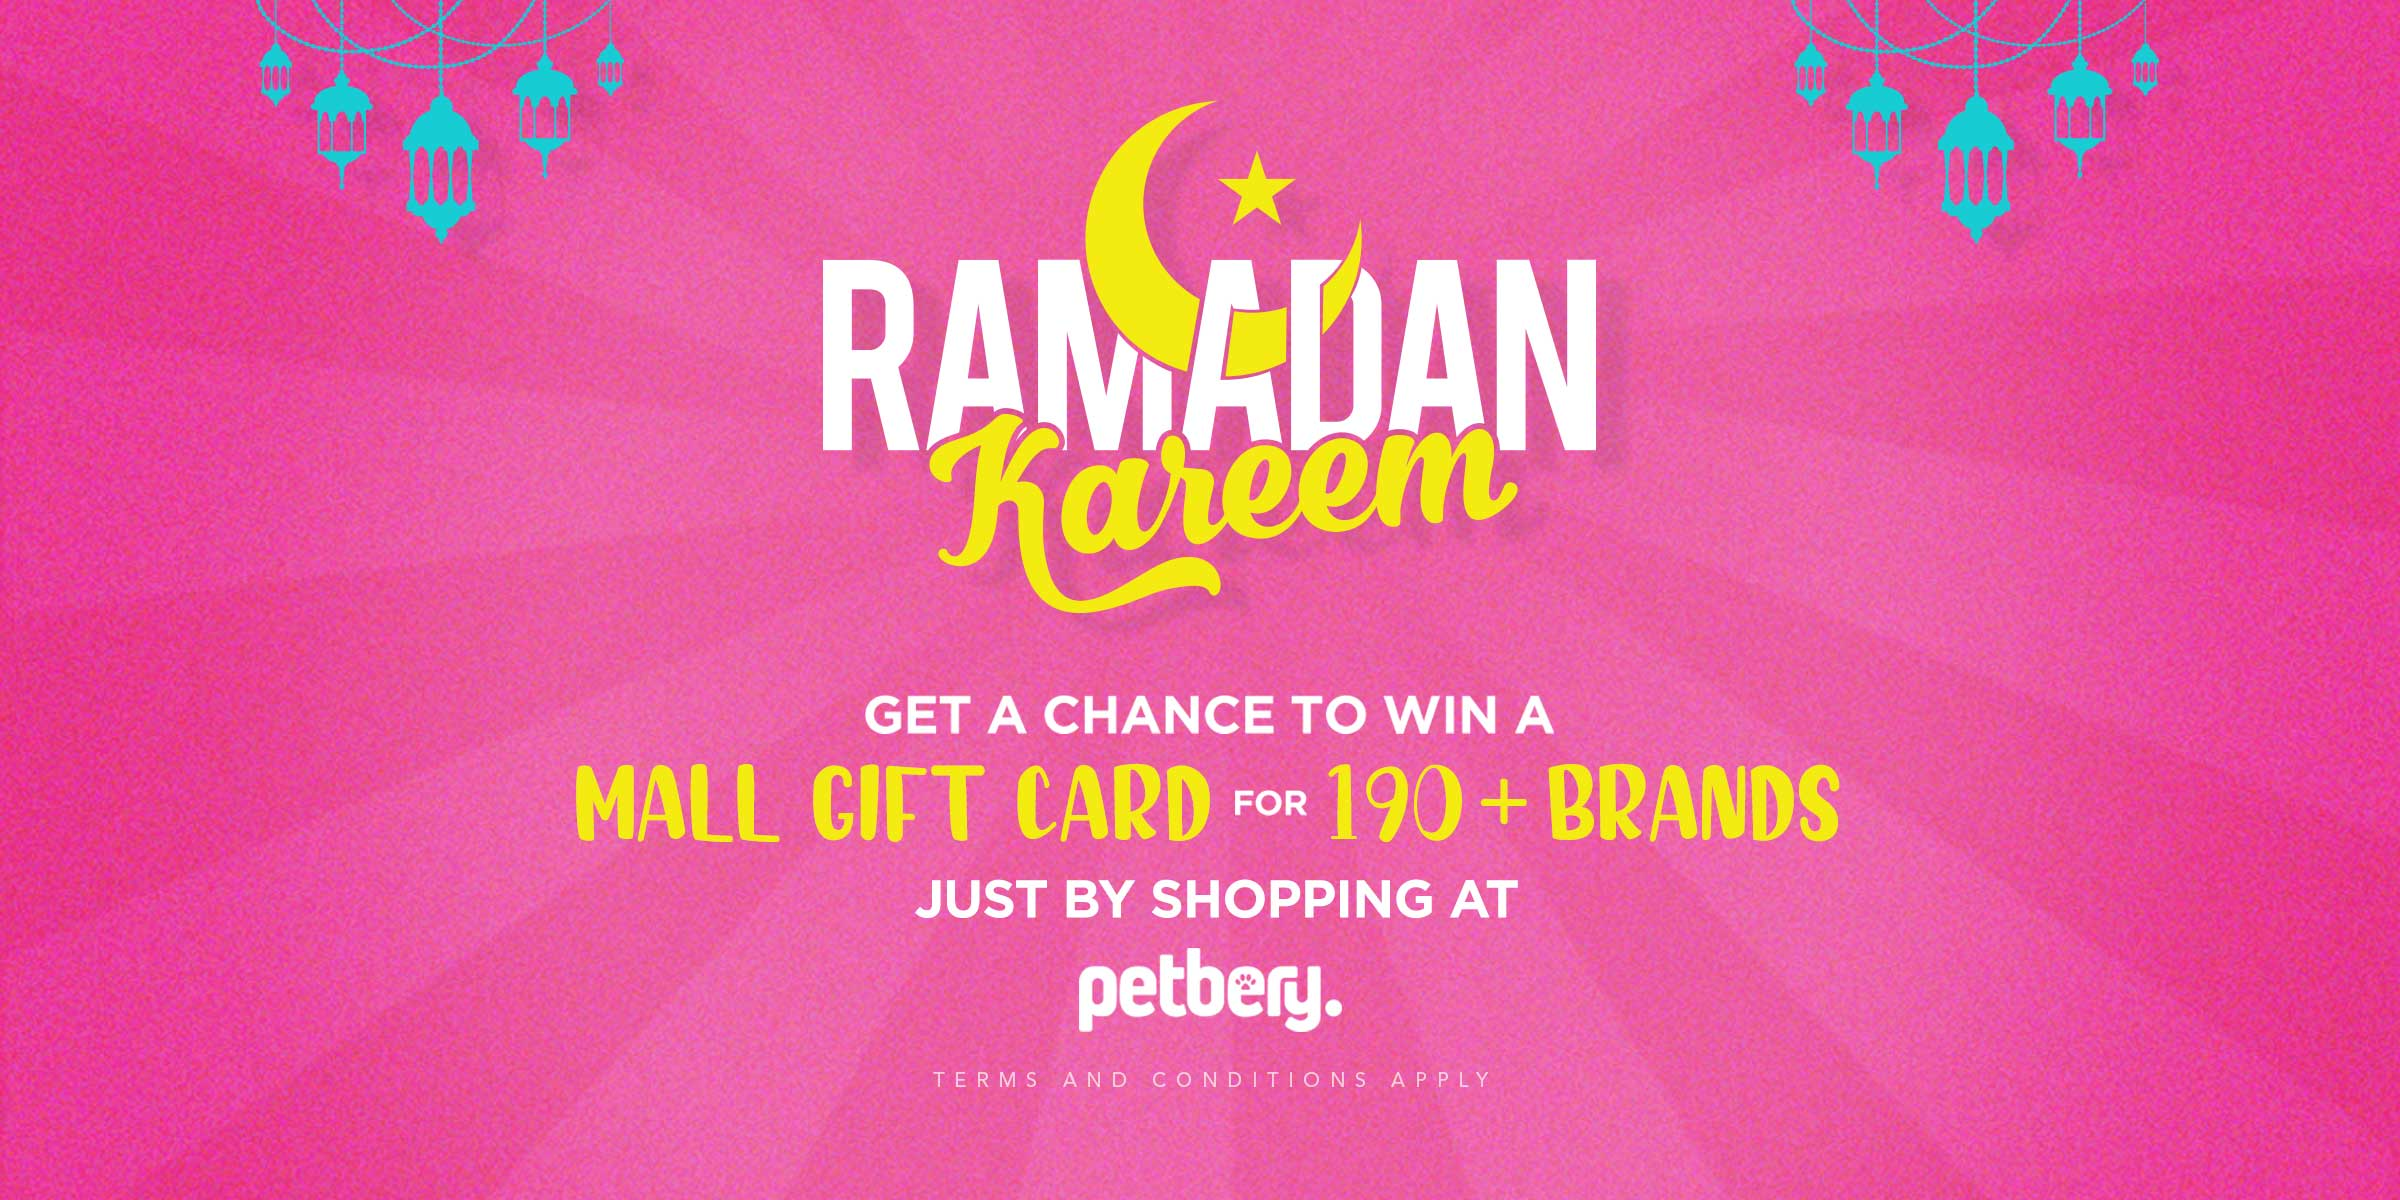 Ramadan Kareem - Win Mall Gift Card